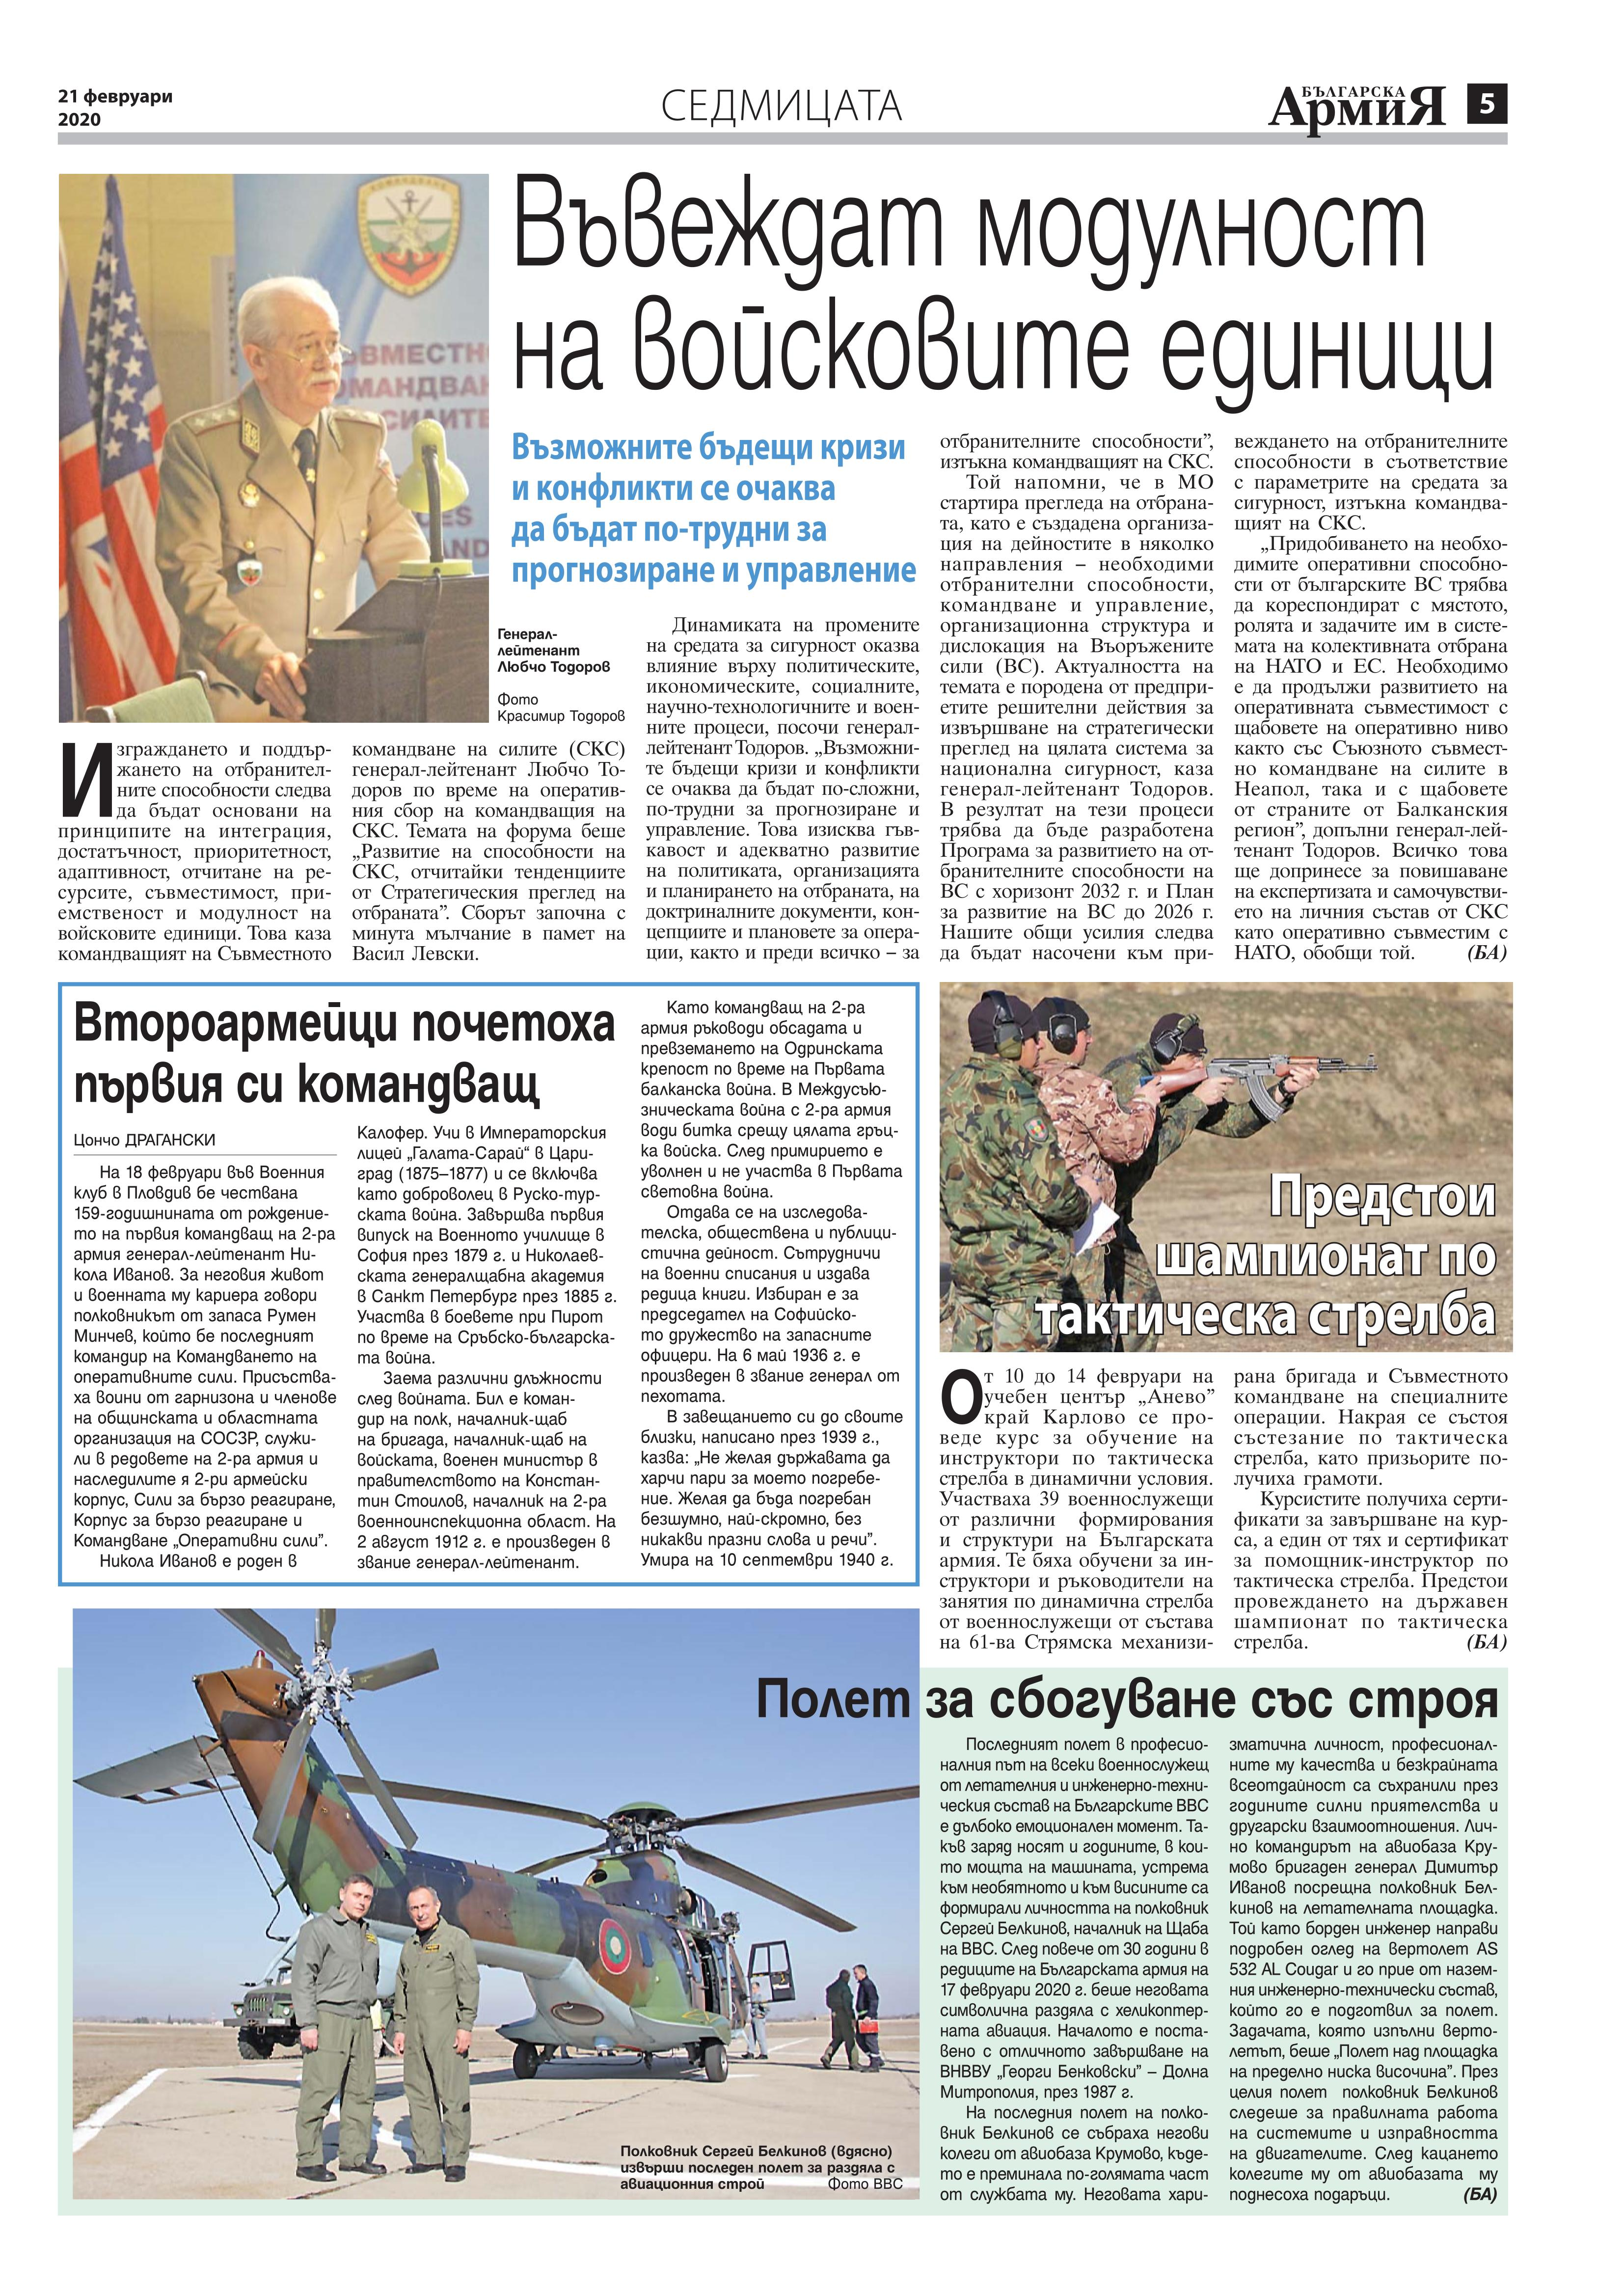 https://www.armymedia.bg/wp-content/uploads/2015/06/05.page1_-123.jpg